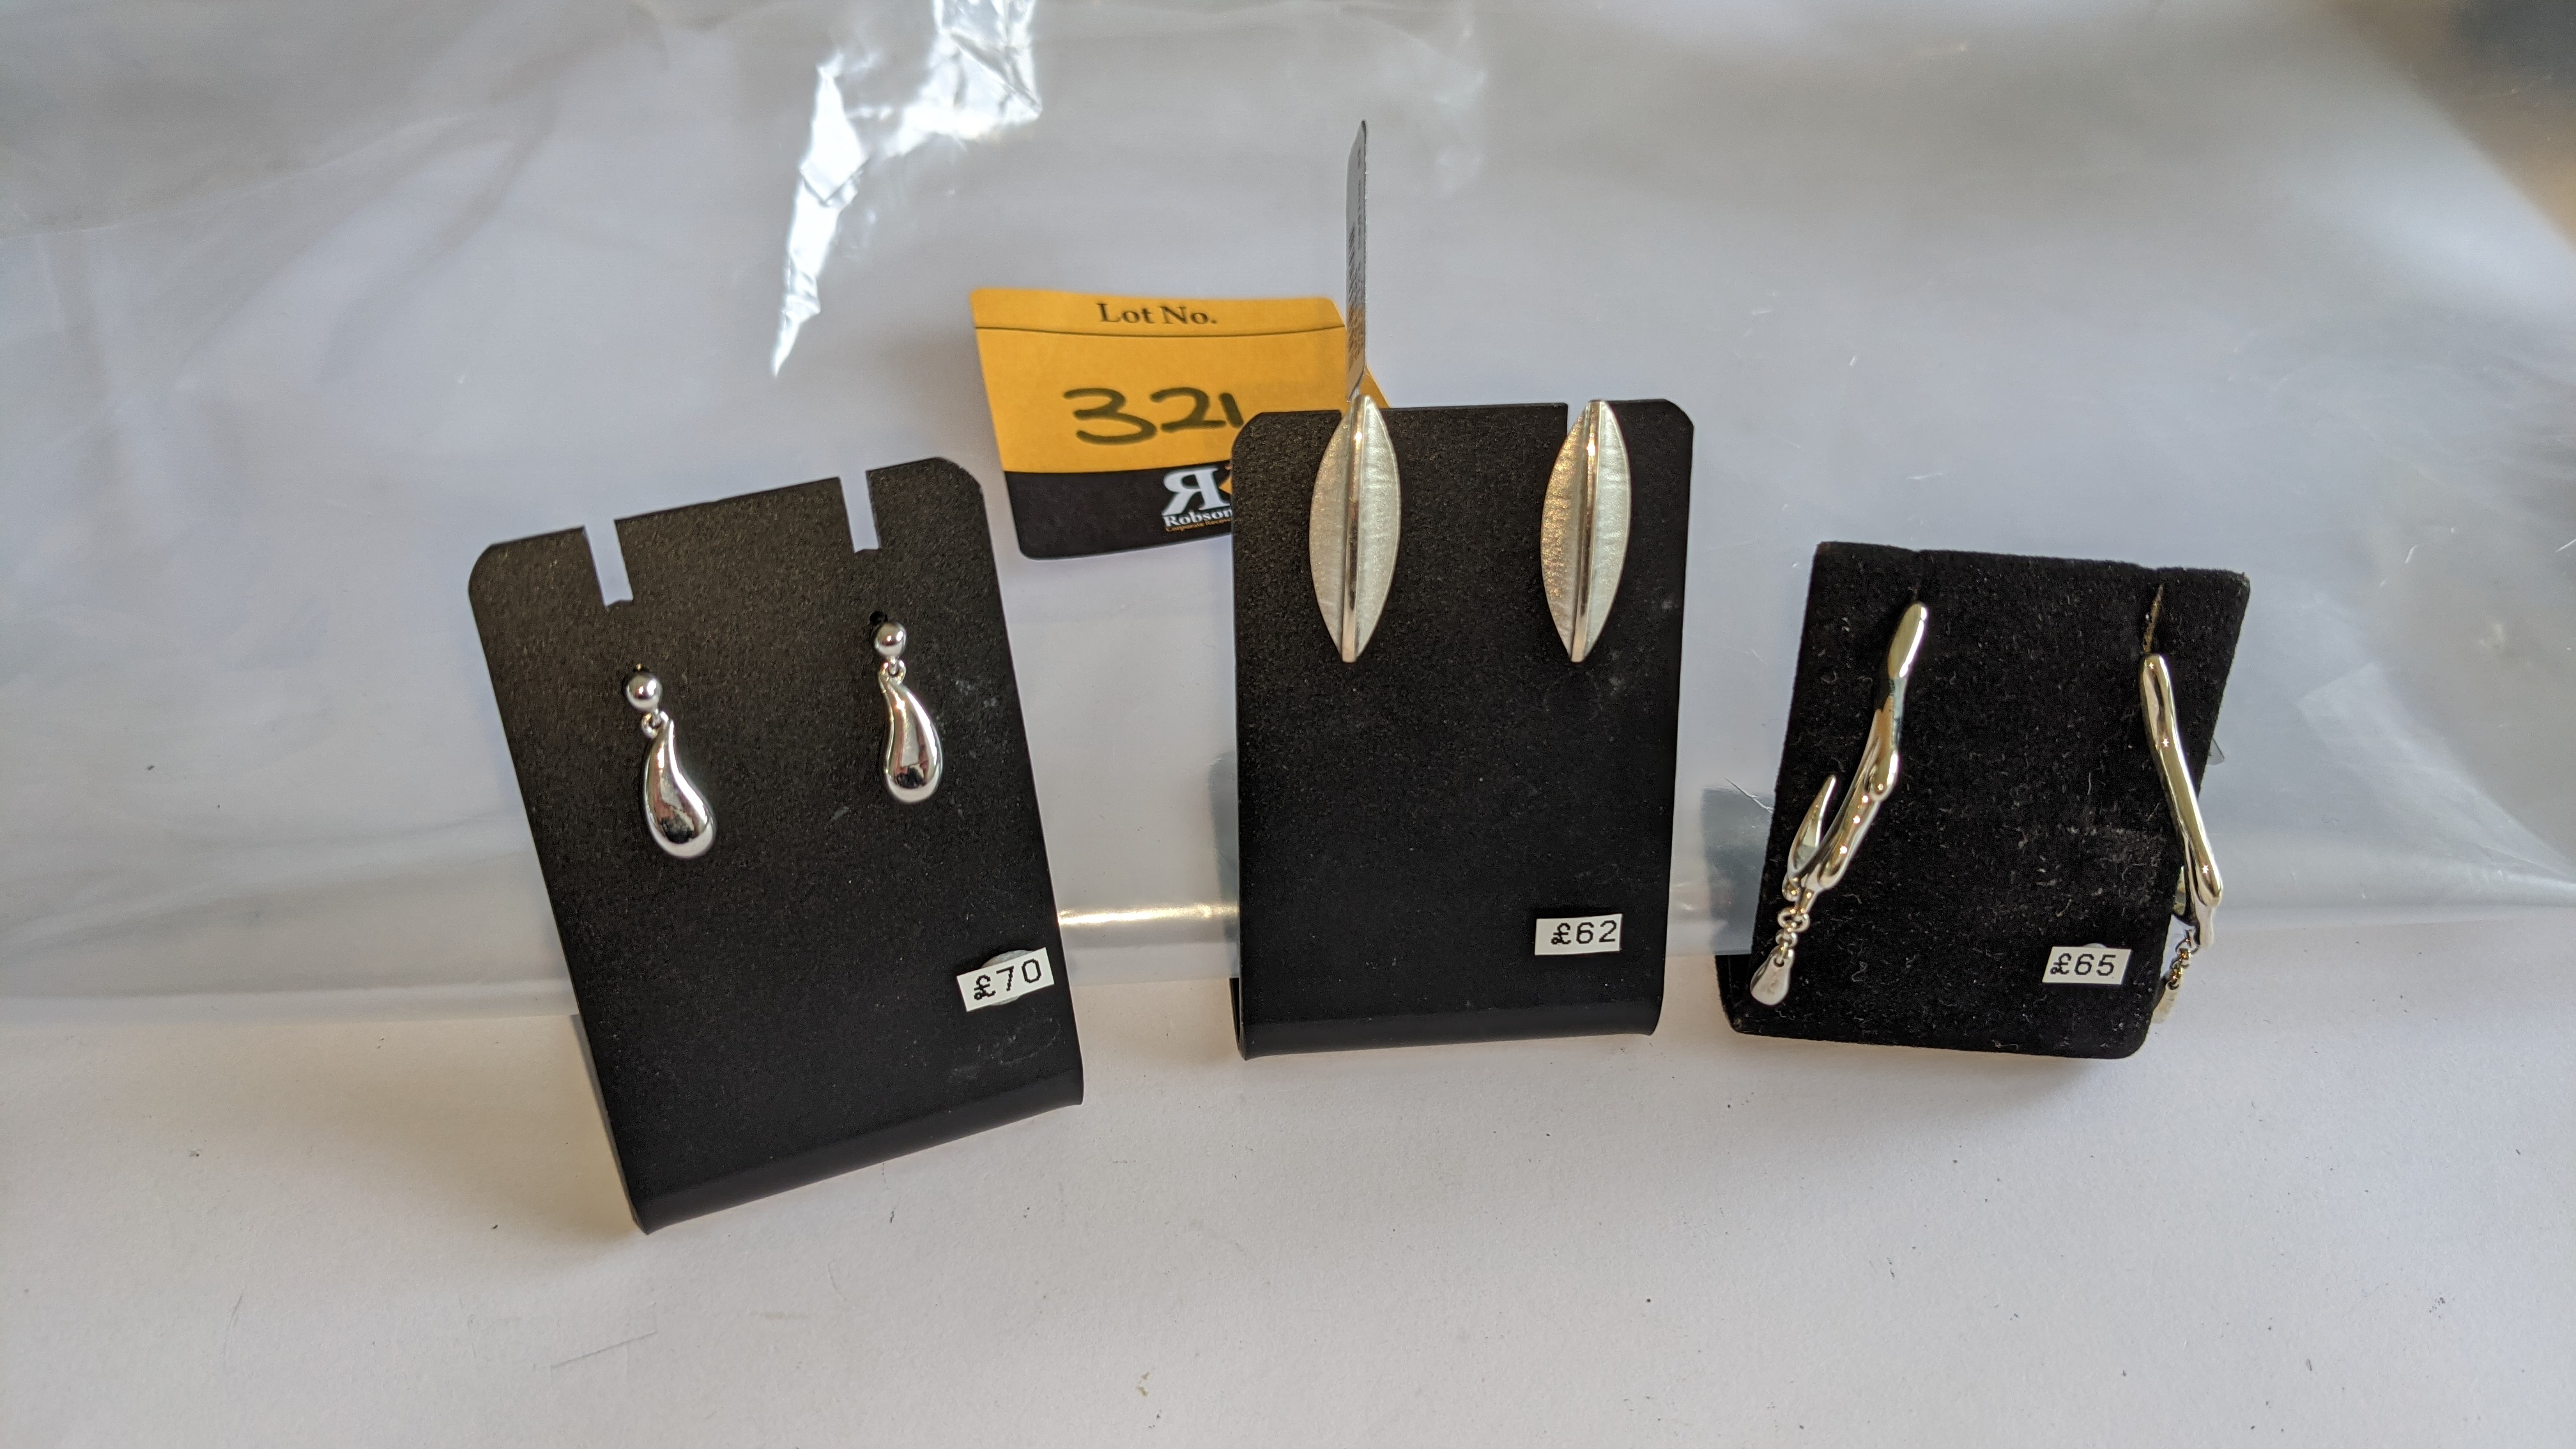 3 assorted pairs of earrings, each with a retail price of £62 - £70 per pair, total RRP £197 - Image 2 of 9